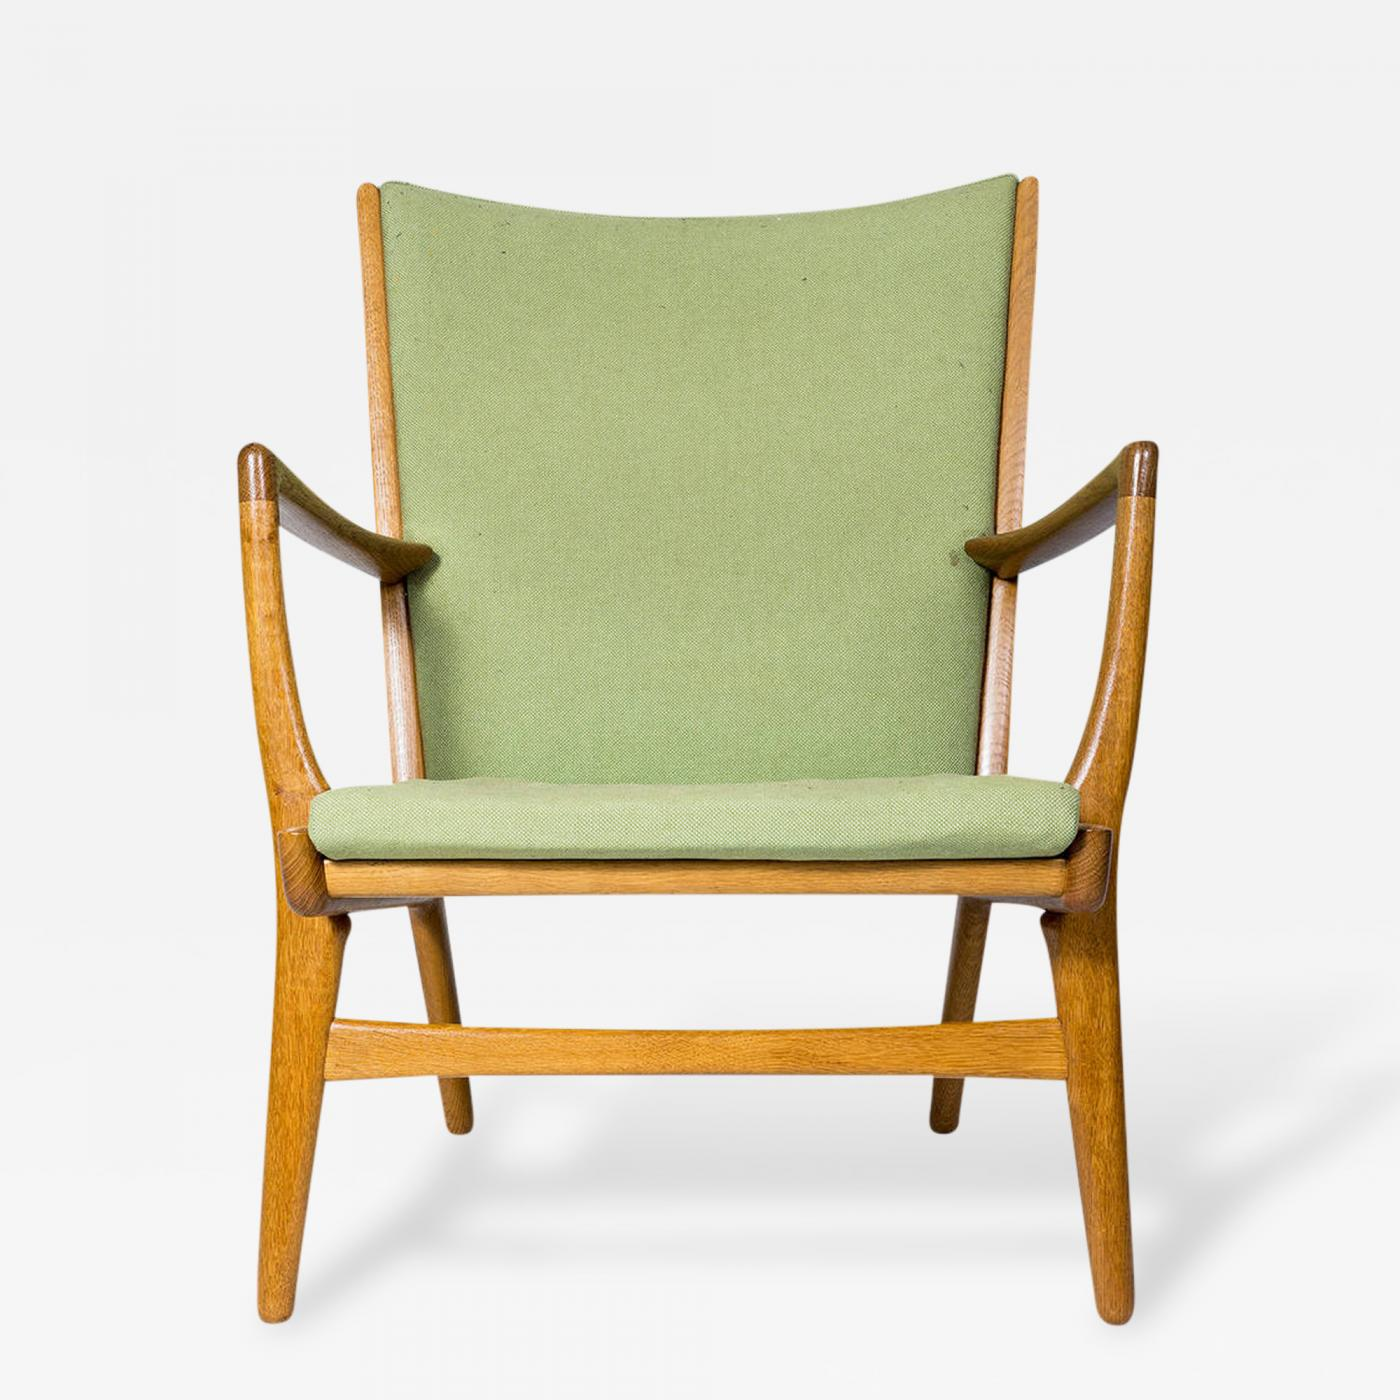 Hans wegner lounge chair - Hans Wegner Hans Wegner Ap 16 Lounge Chair Click On Image To Enlarge